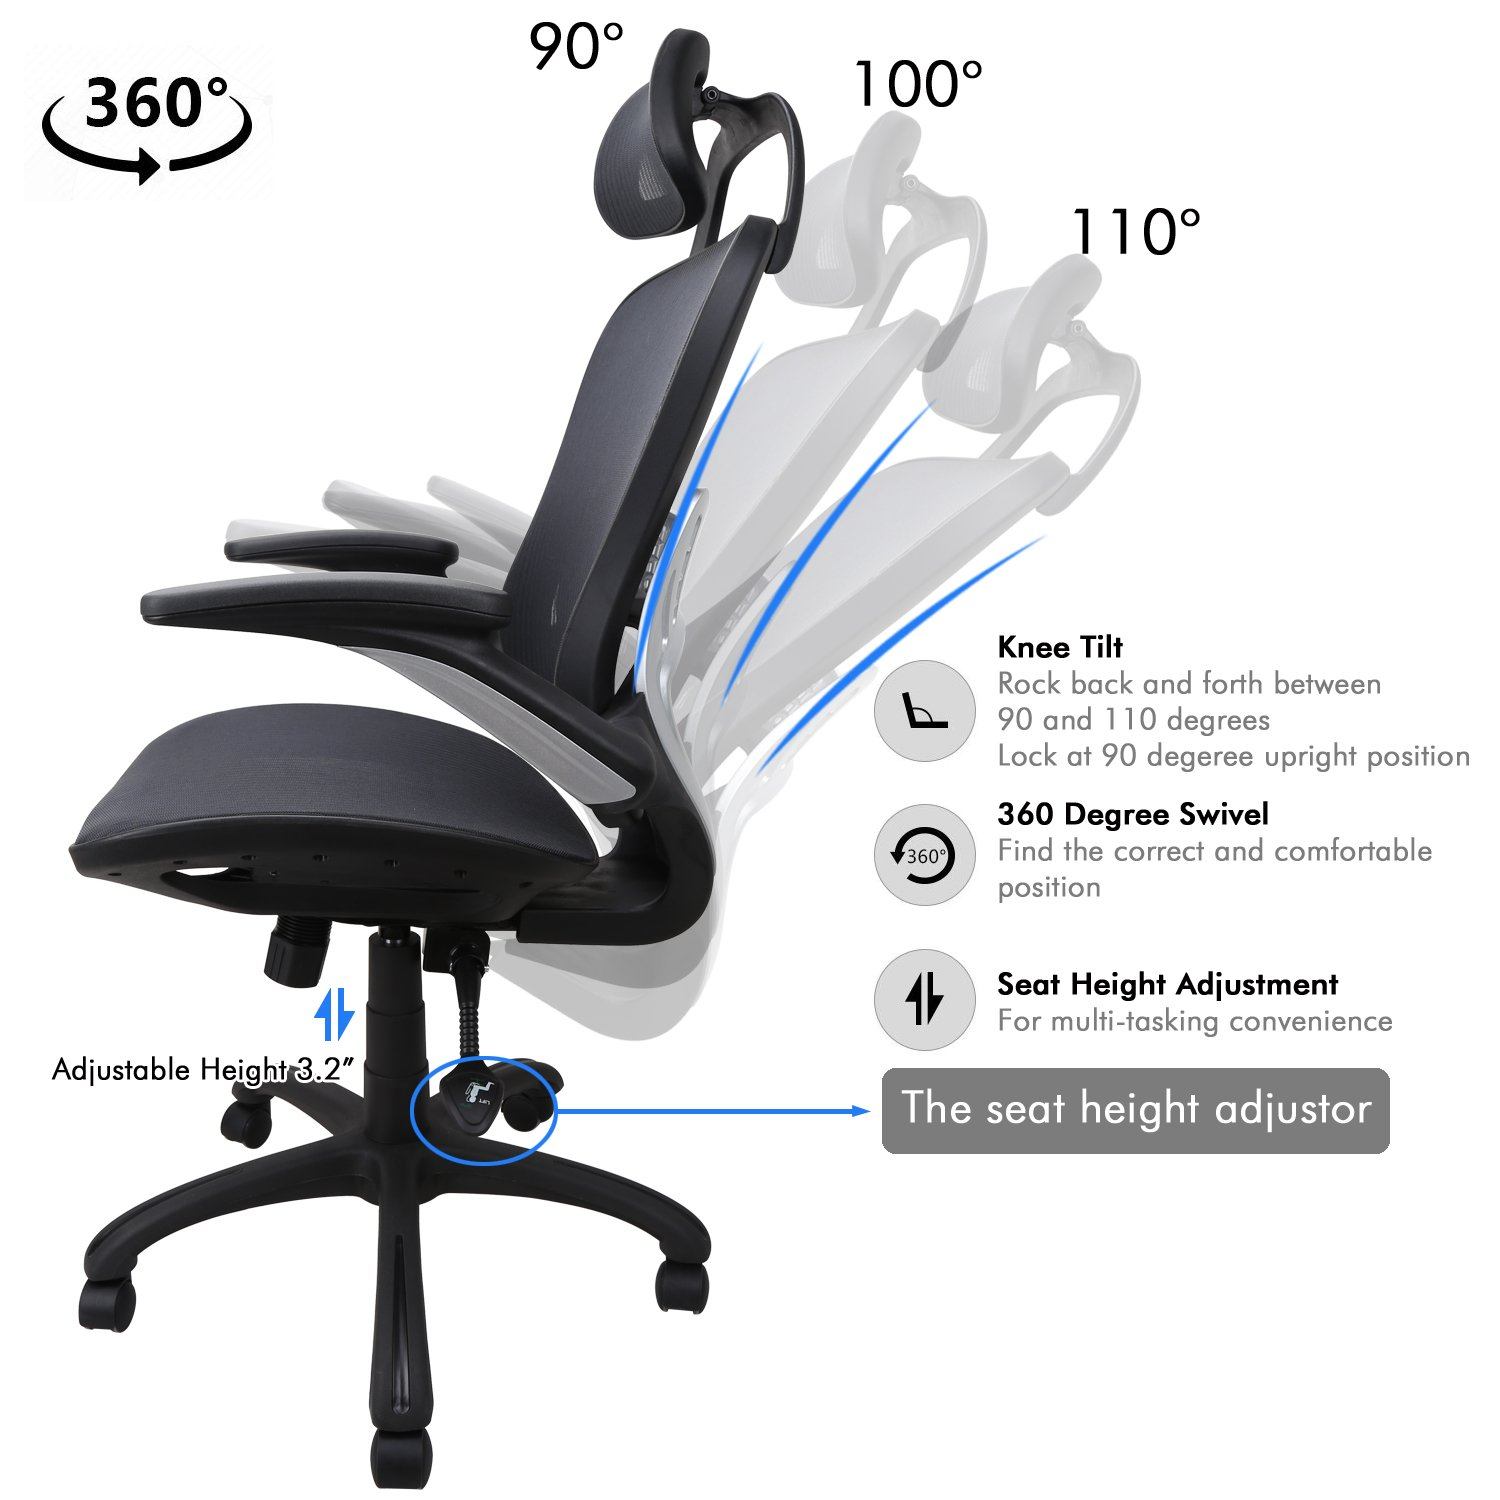 Ergonomic Office Chair: Passed BIFMA/SGS Weight Support Over 300Ibs,Breathable Mesh Cushion &High Back - Executive Chairs with Adjustable Head& Backrest,Flip-up Armrests,360-Degree Swivel Chair by Komene (Image #3)